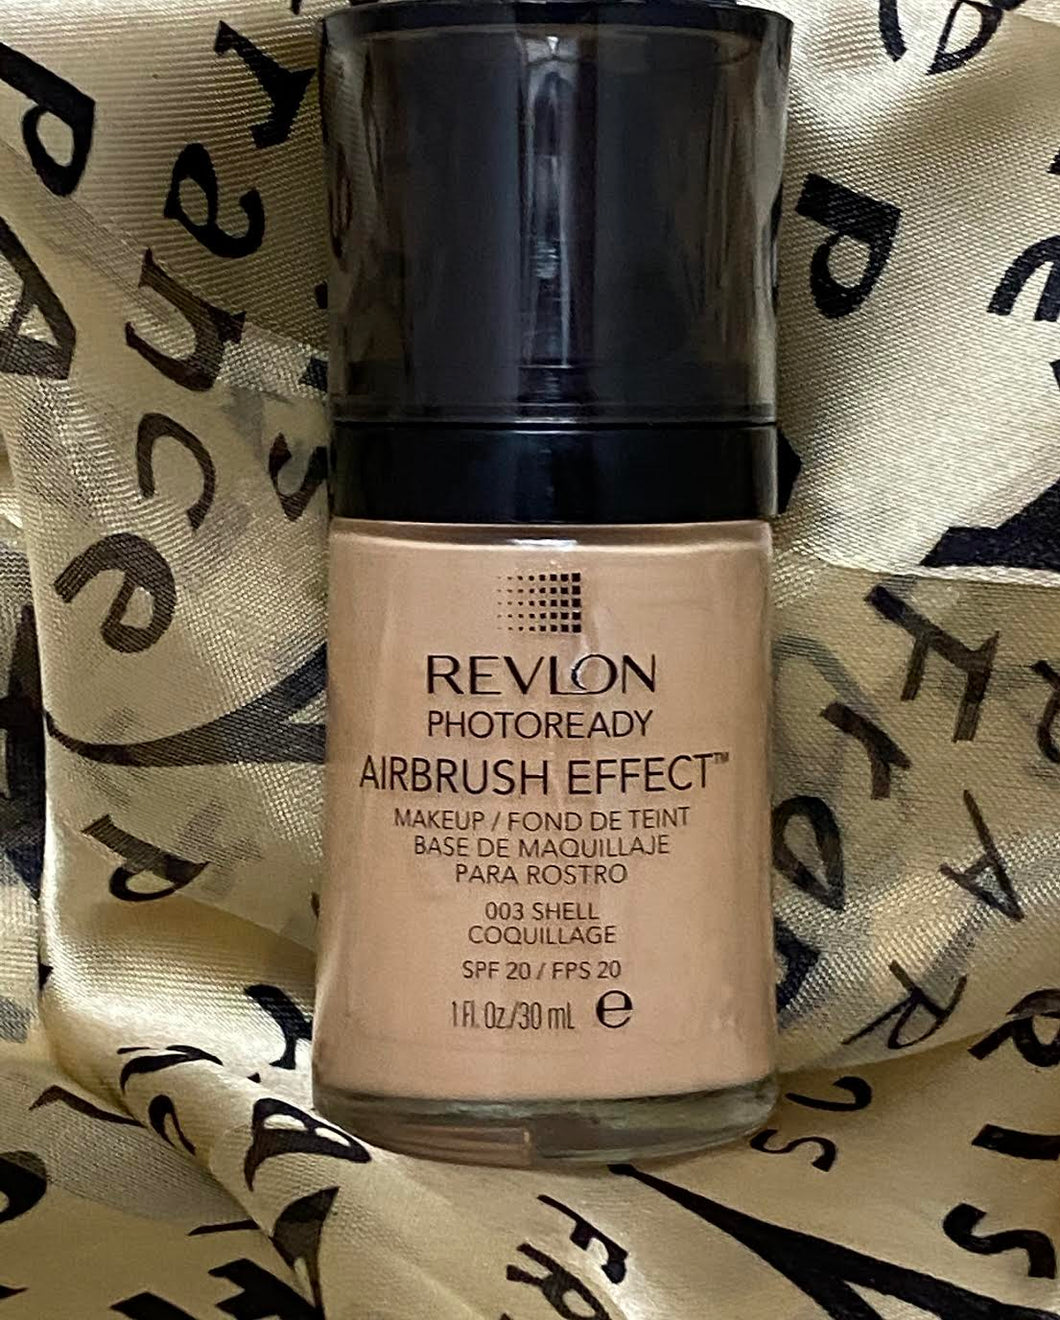 Wholesale - Revlon Airbrush Effect Makeup - 1oz - 003 Shell Coquillage - SPF 20